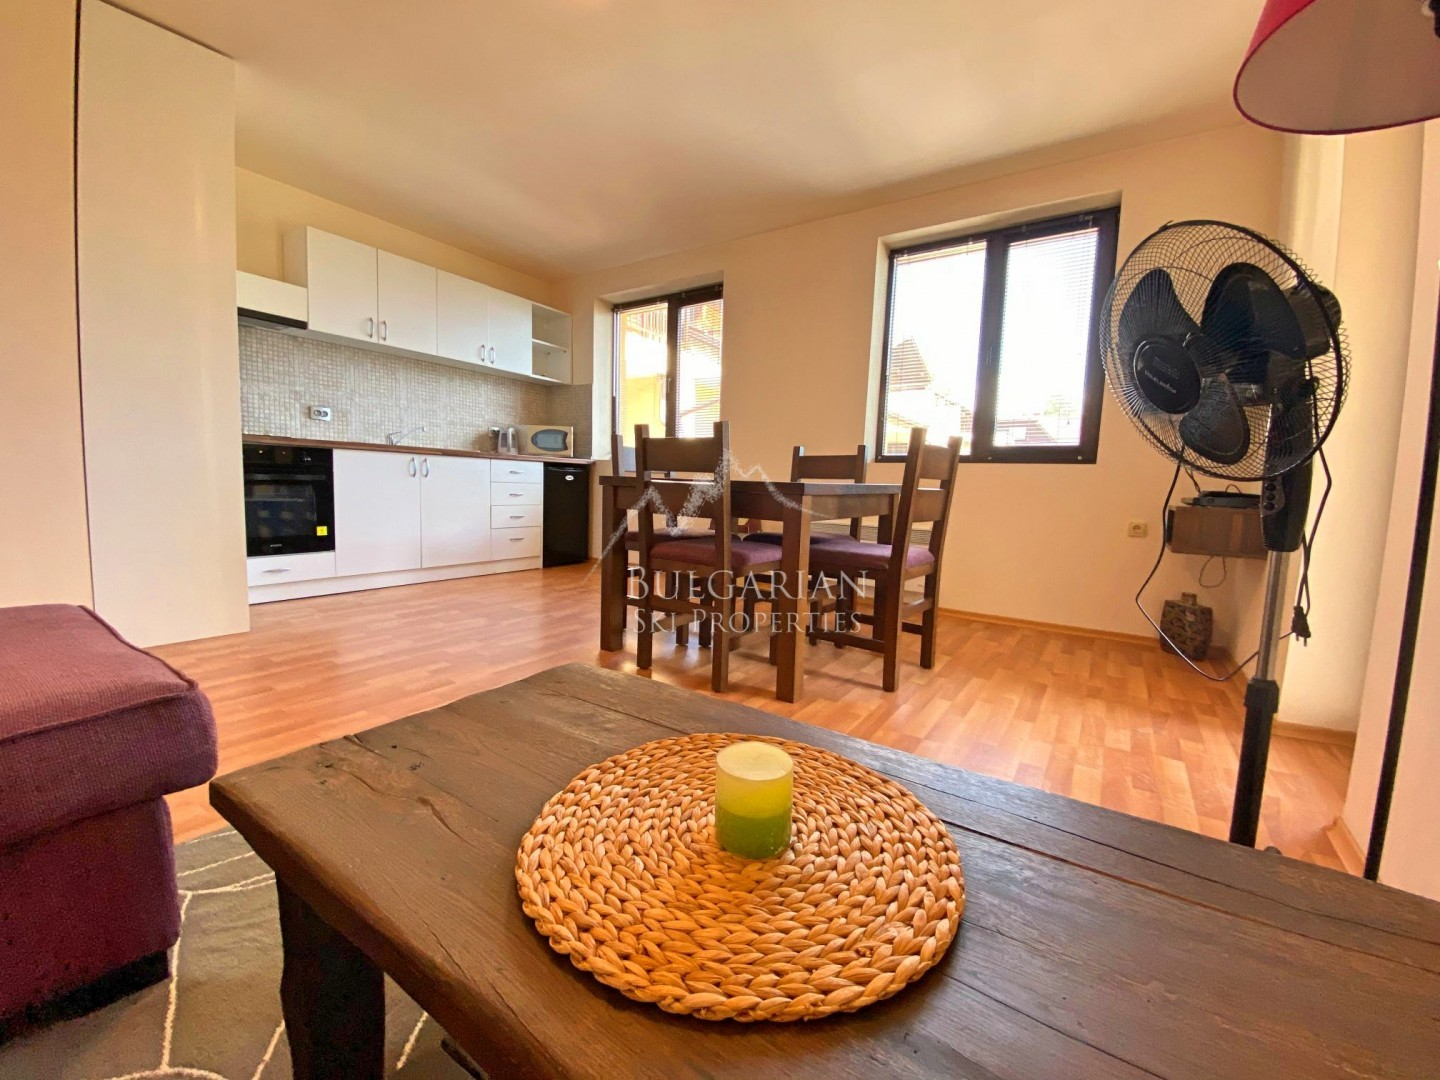 Bansko: stylishly two-bedroom apartment for sale in residential building